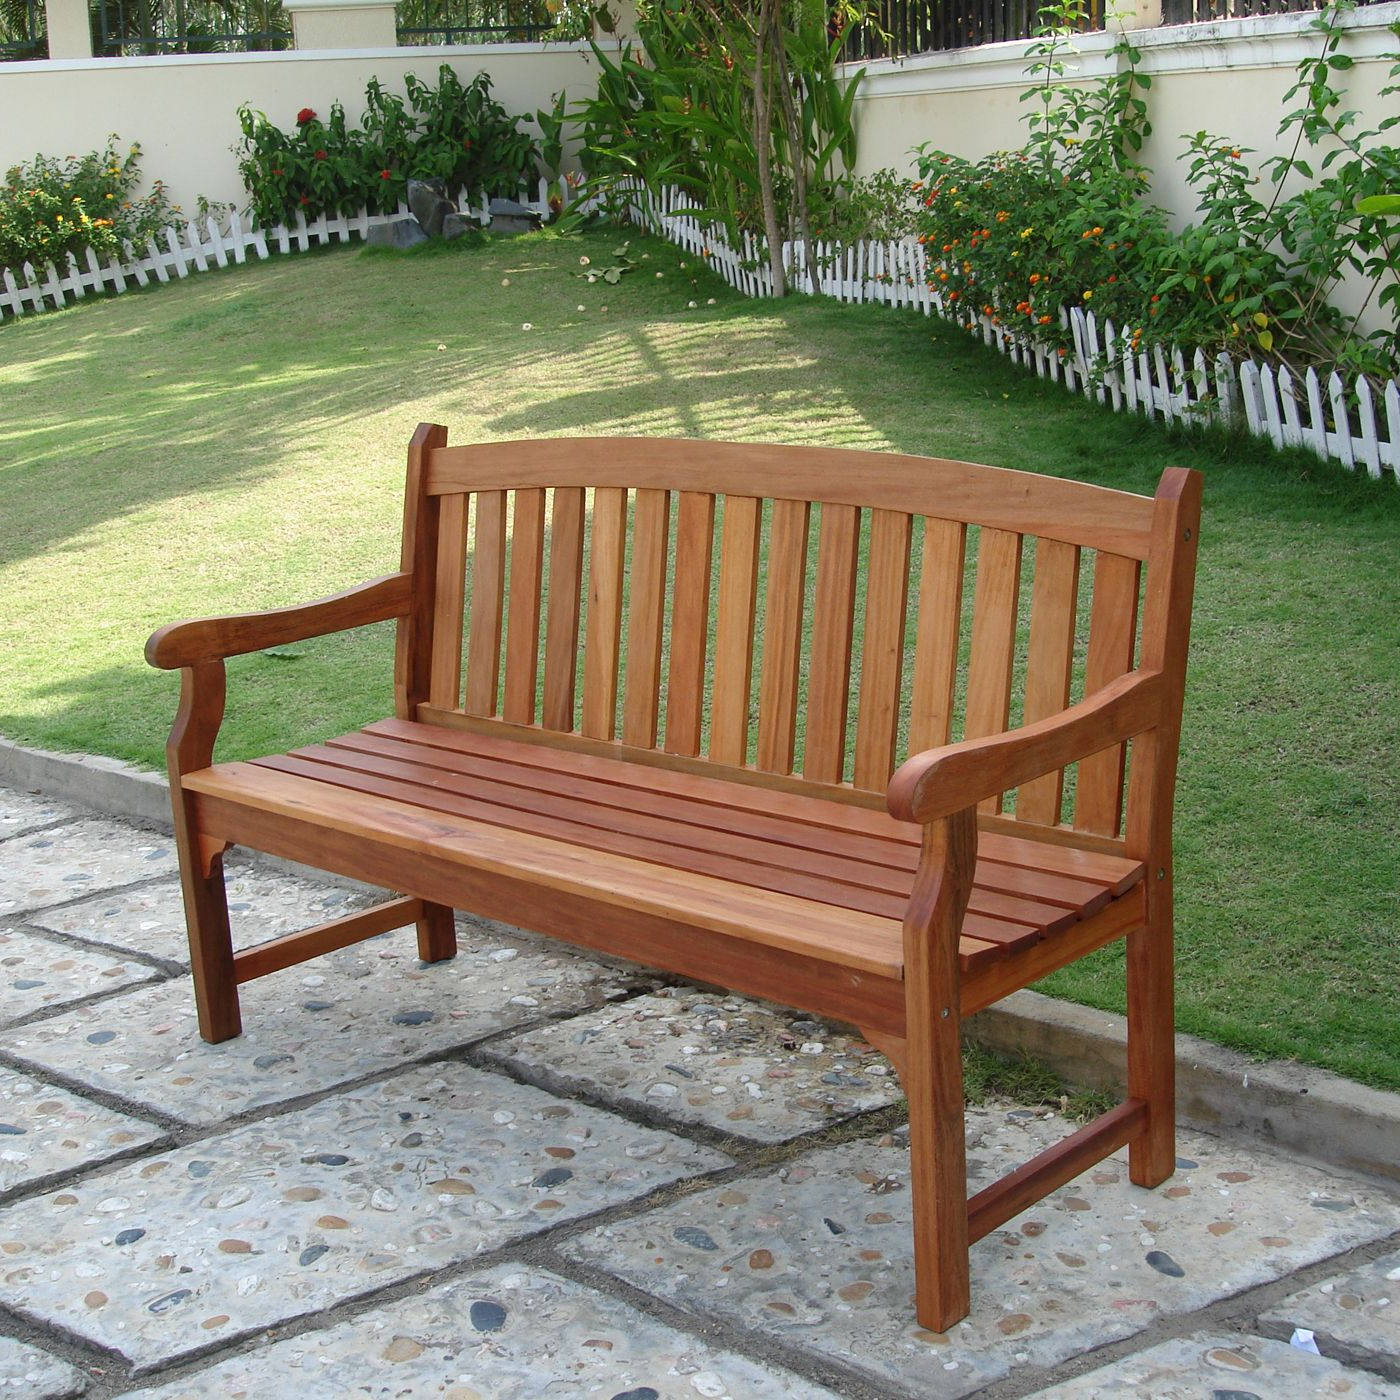 Wallie Teak Garden Benches Throughout Recent Vifah V275 Marley Two Seater Bench – Outdoor Living Showroom (View 10 of 30)